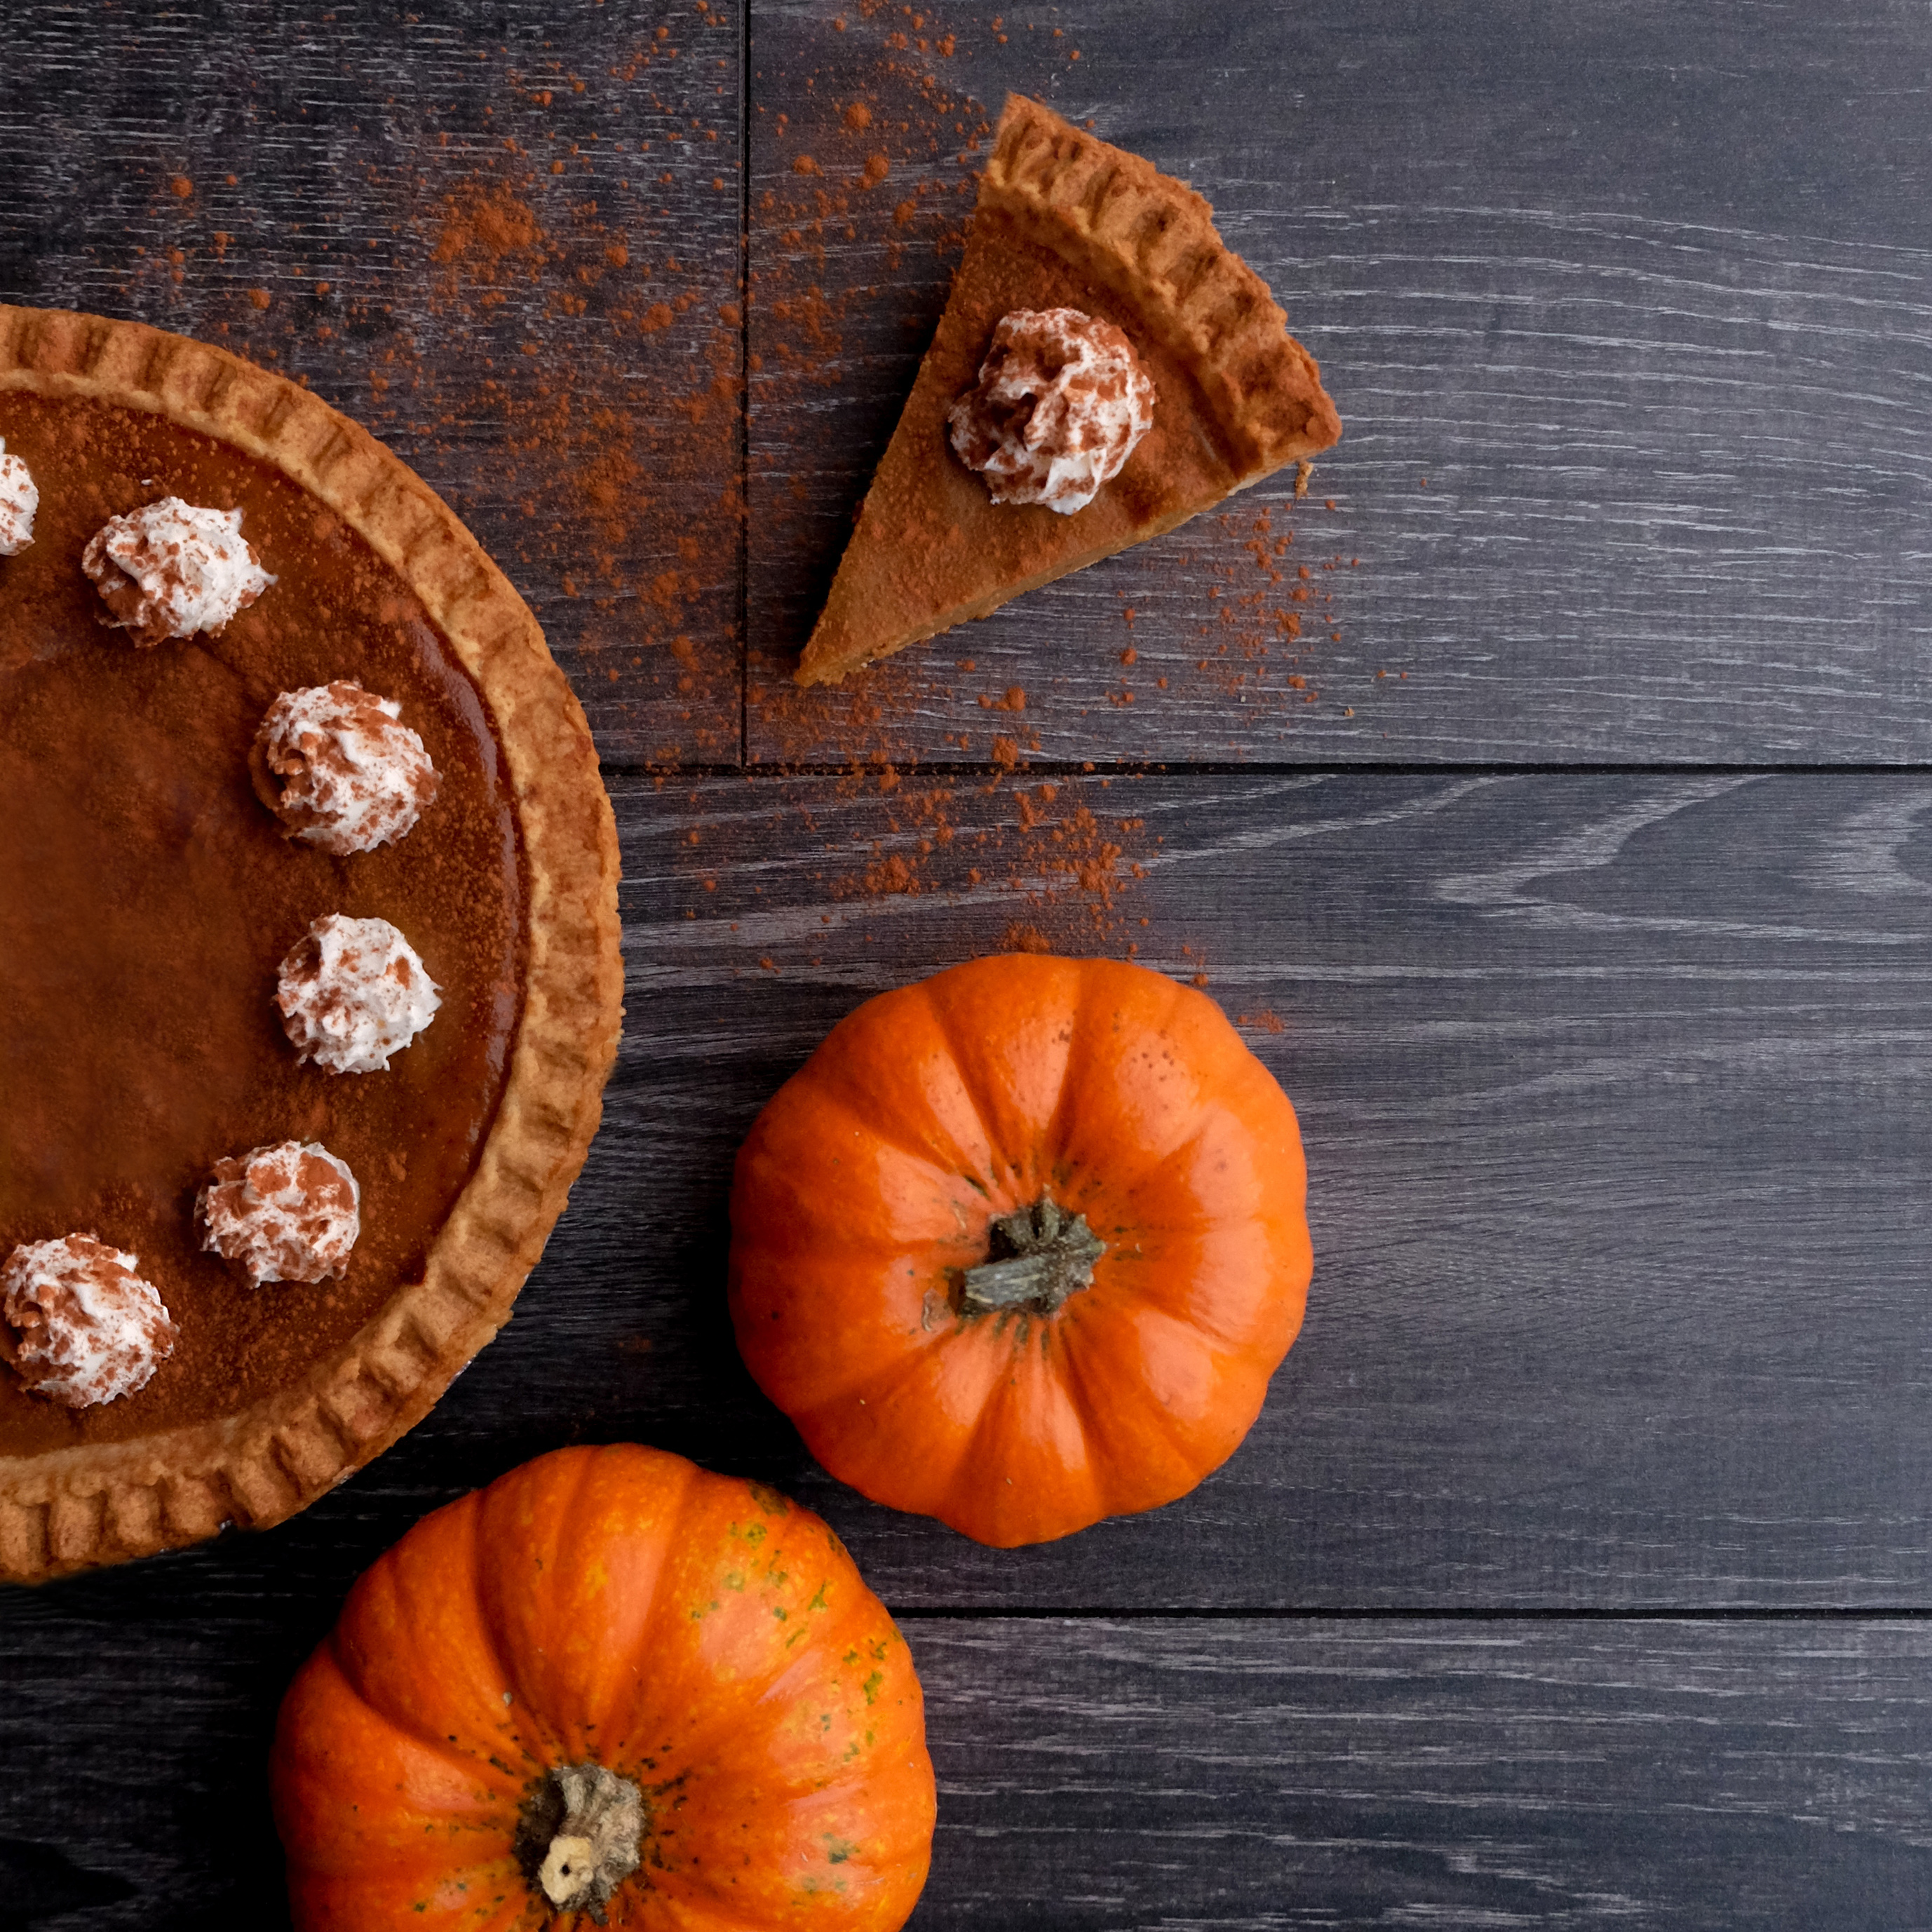 Thanksgiving image with pumpkin pie and mini pumpkins